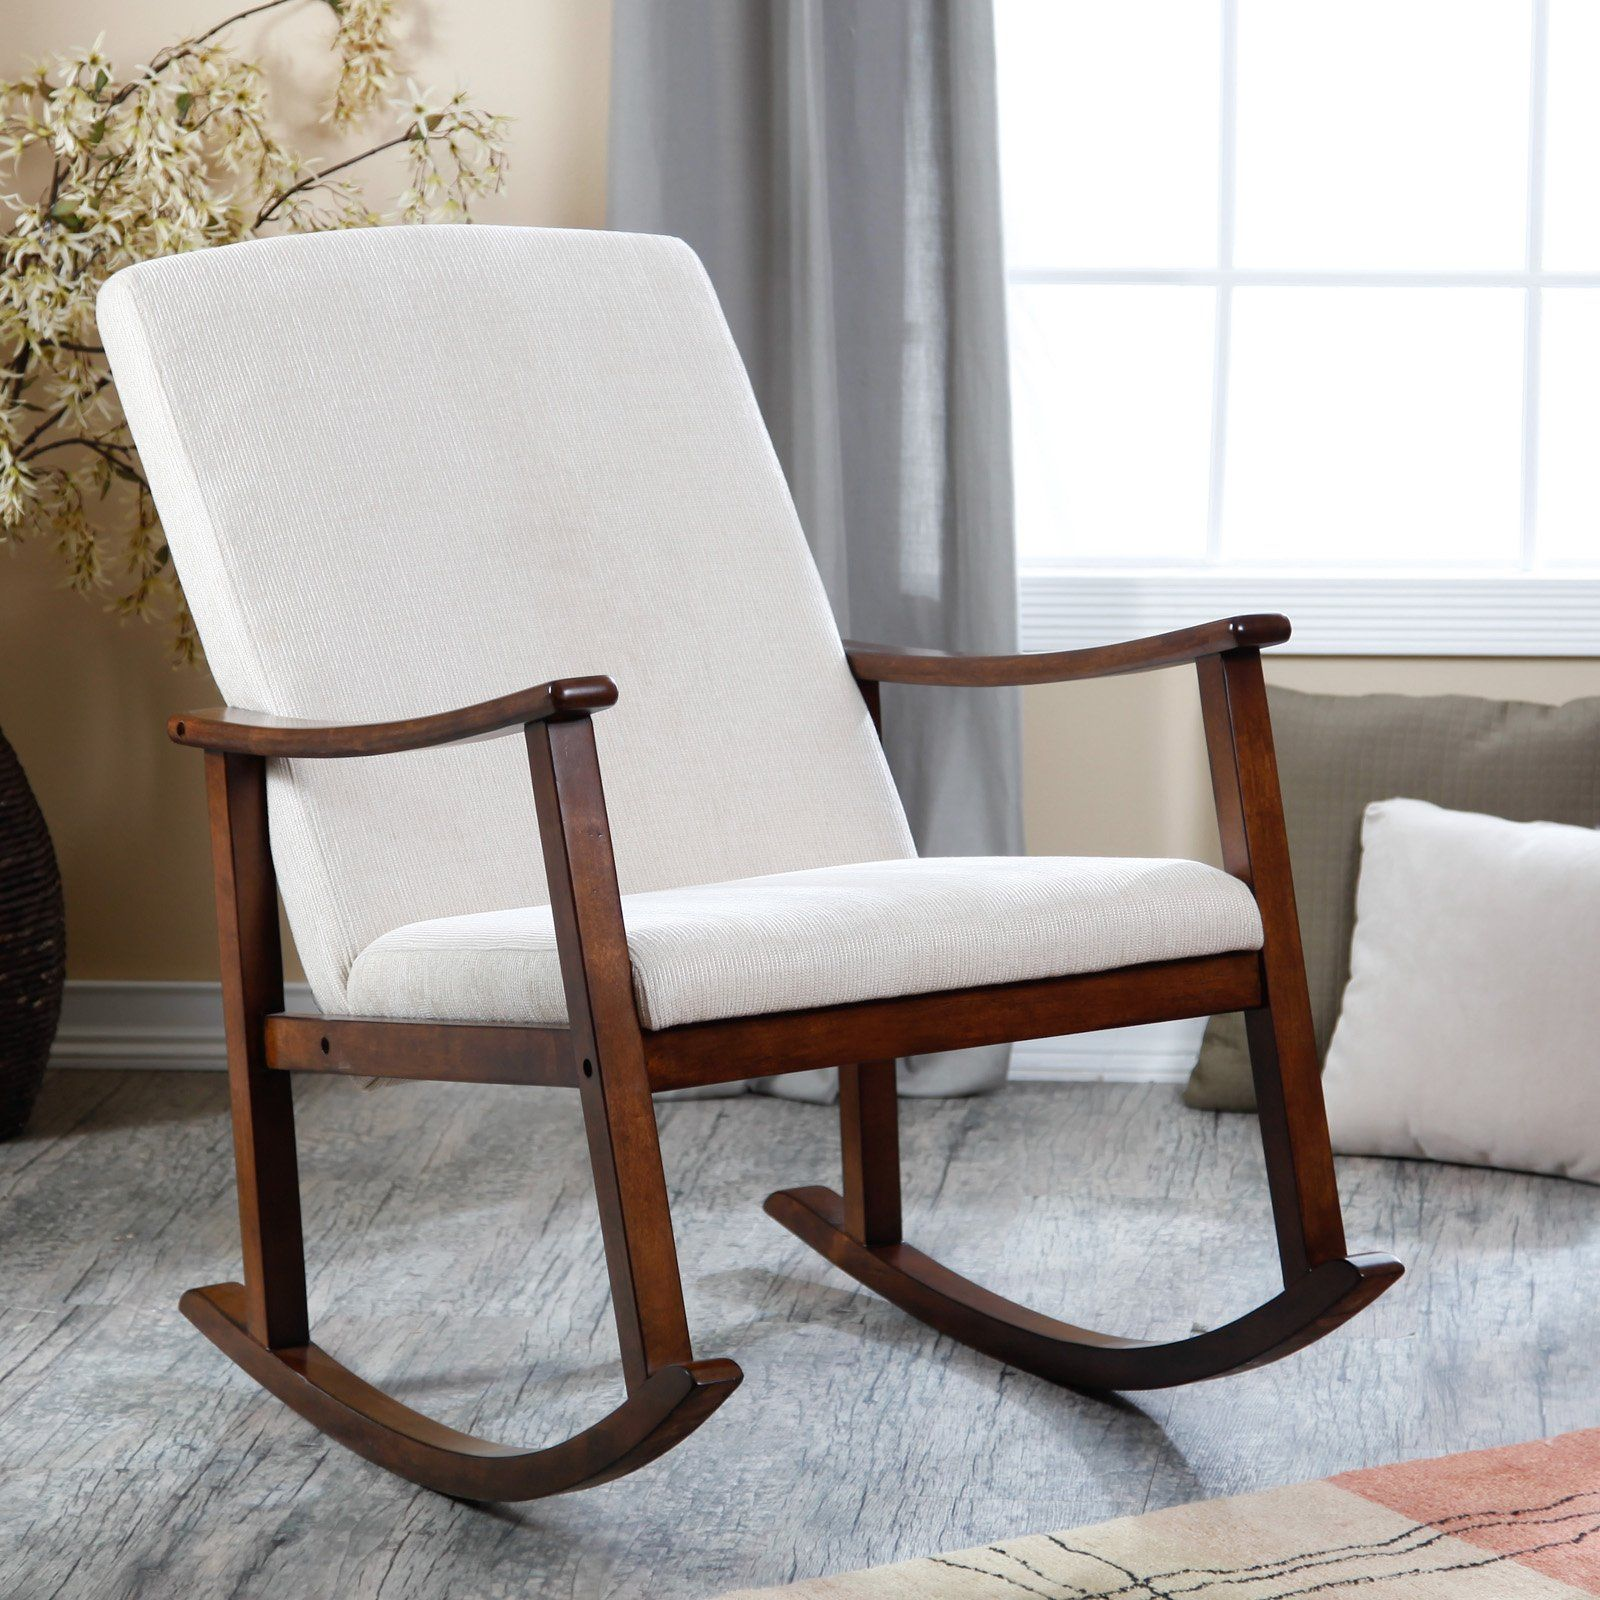 Wooden Rocking Chair For Nursery Have To Have It Holden Modern Rocking Chair Upholstered Ivory